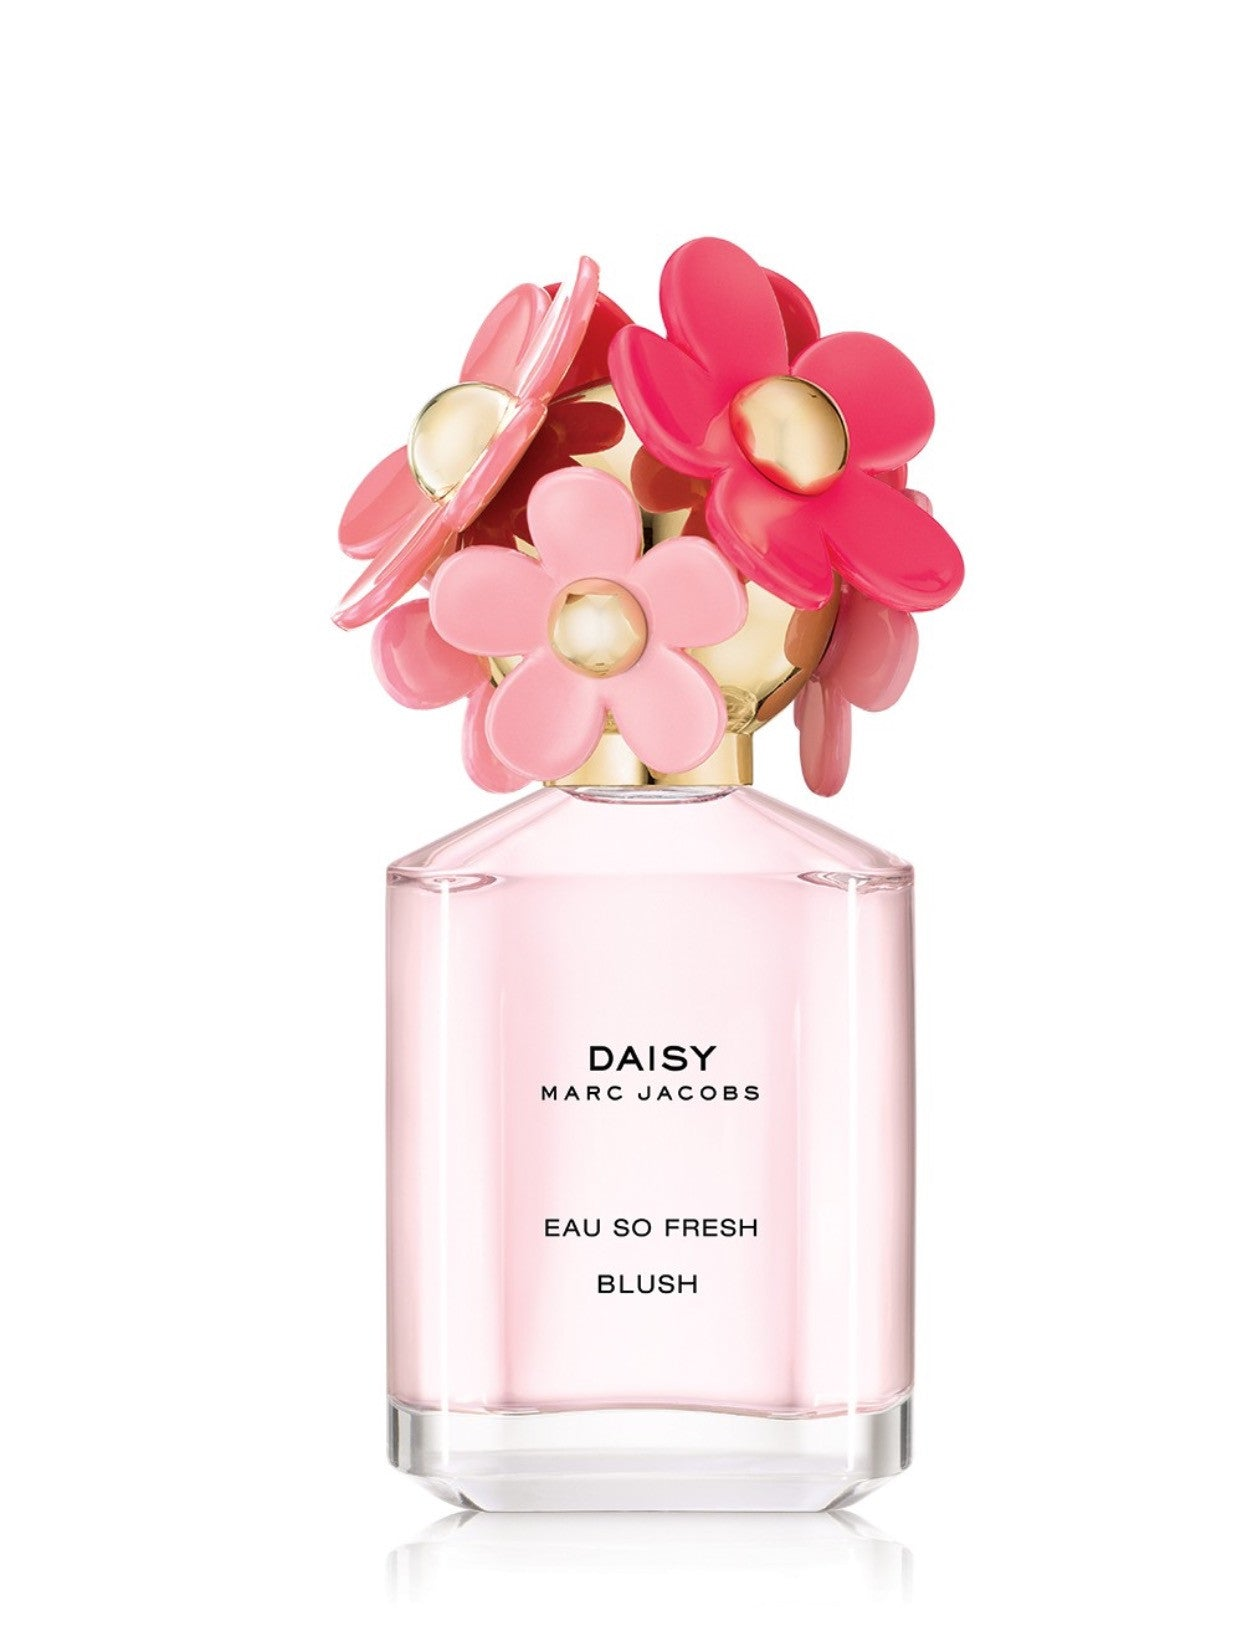 Marc jacobs daisy eau so fresh blush 25 oz edt fragrance connect izmirmasajfo Image collections